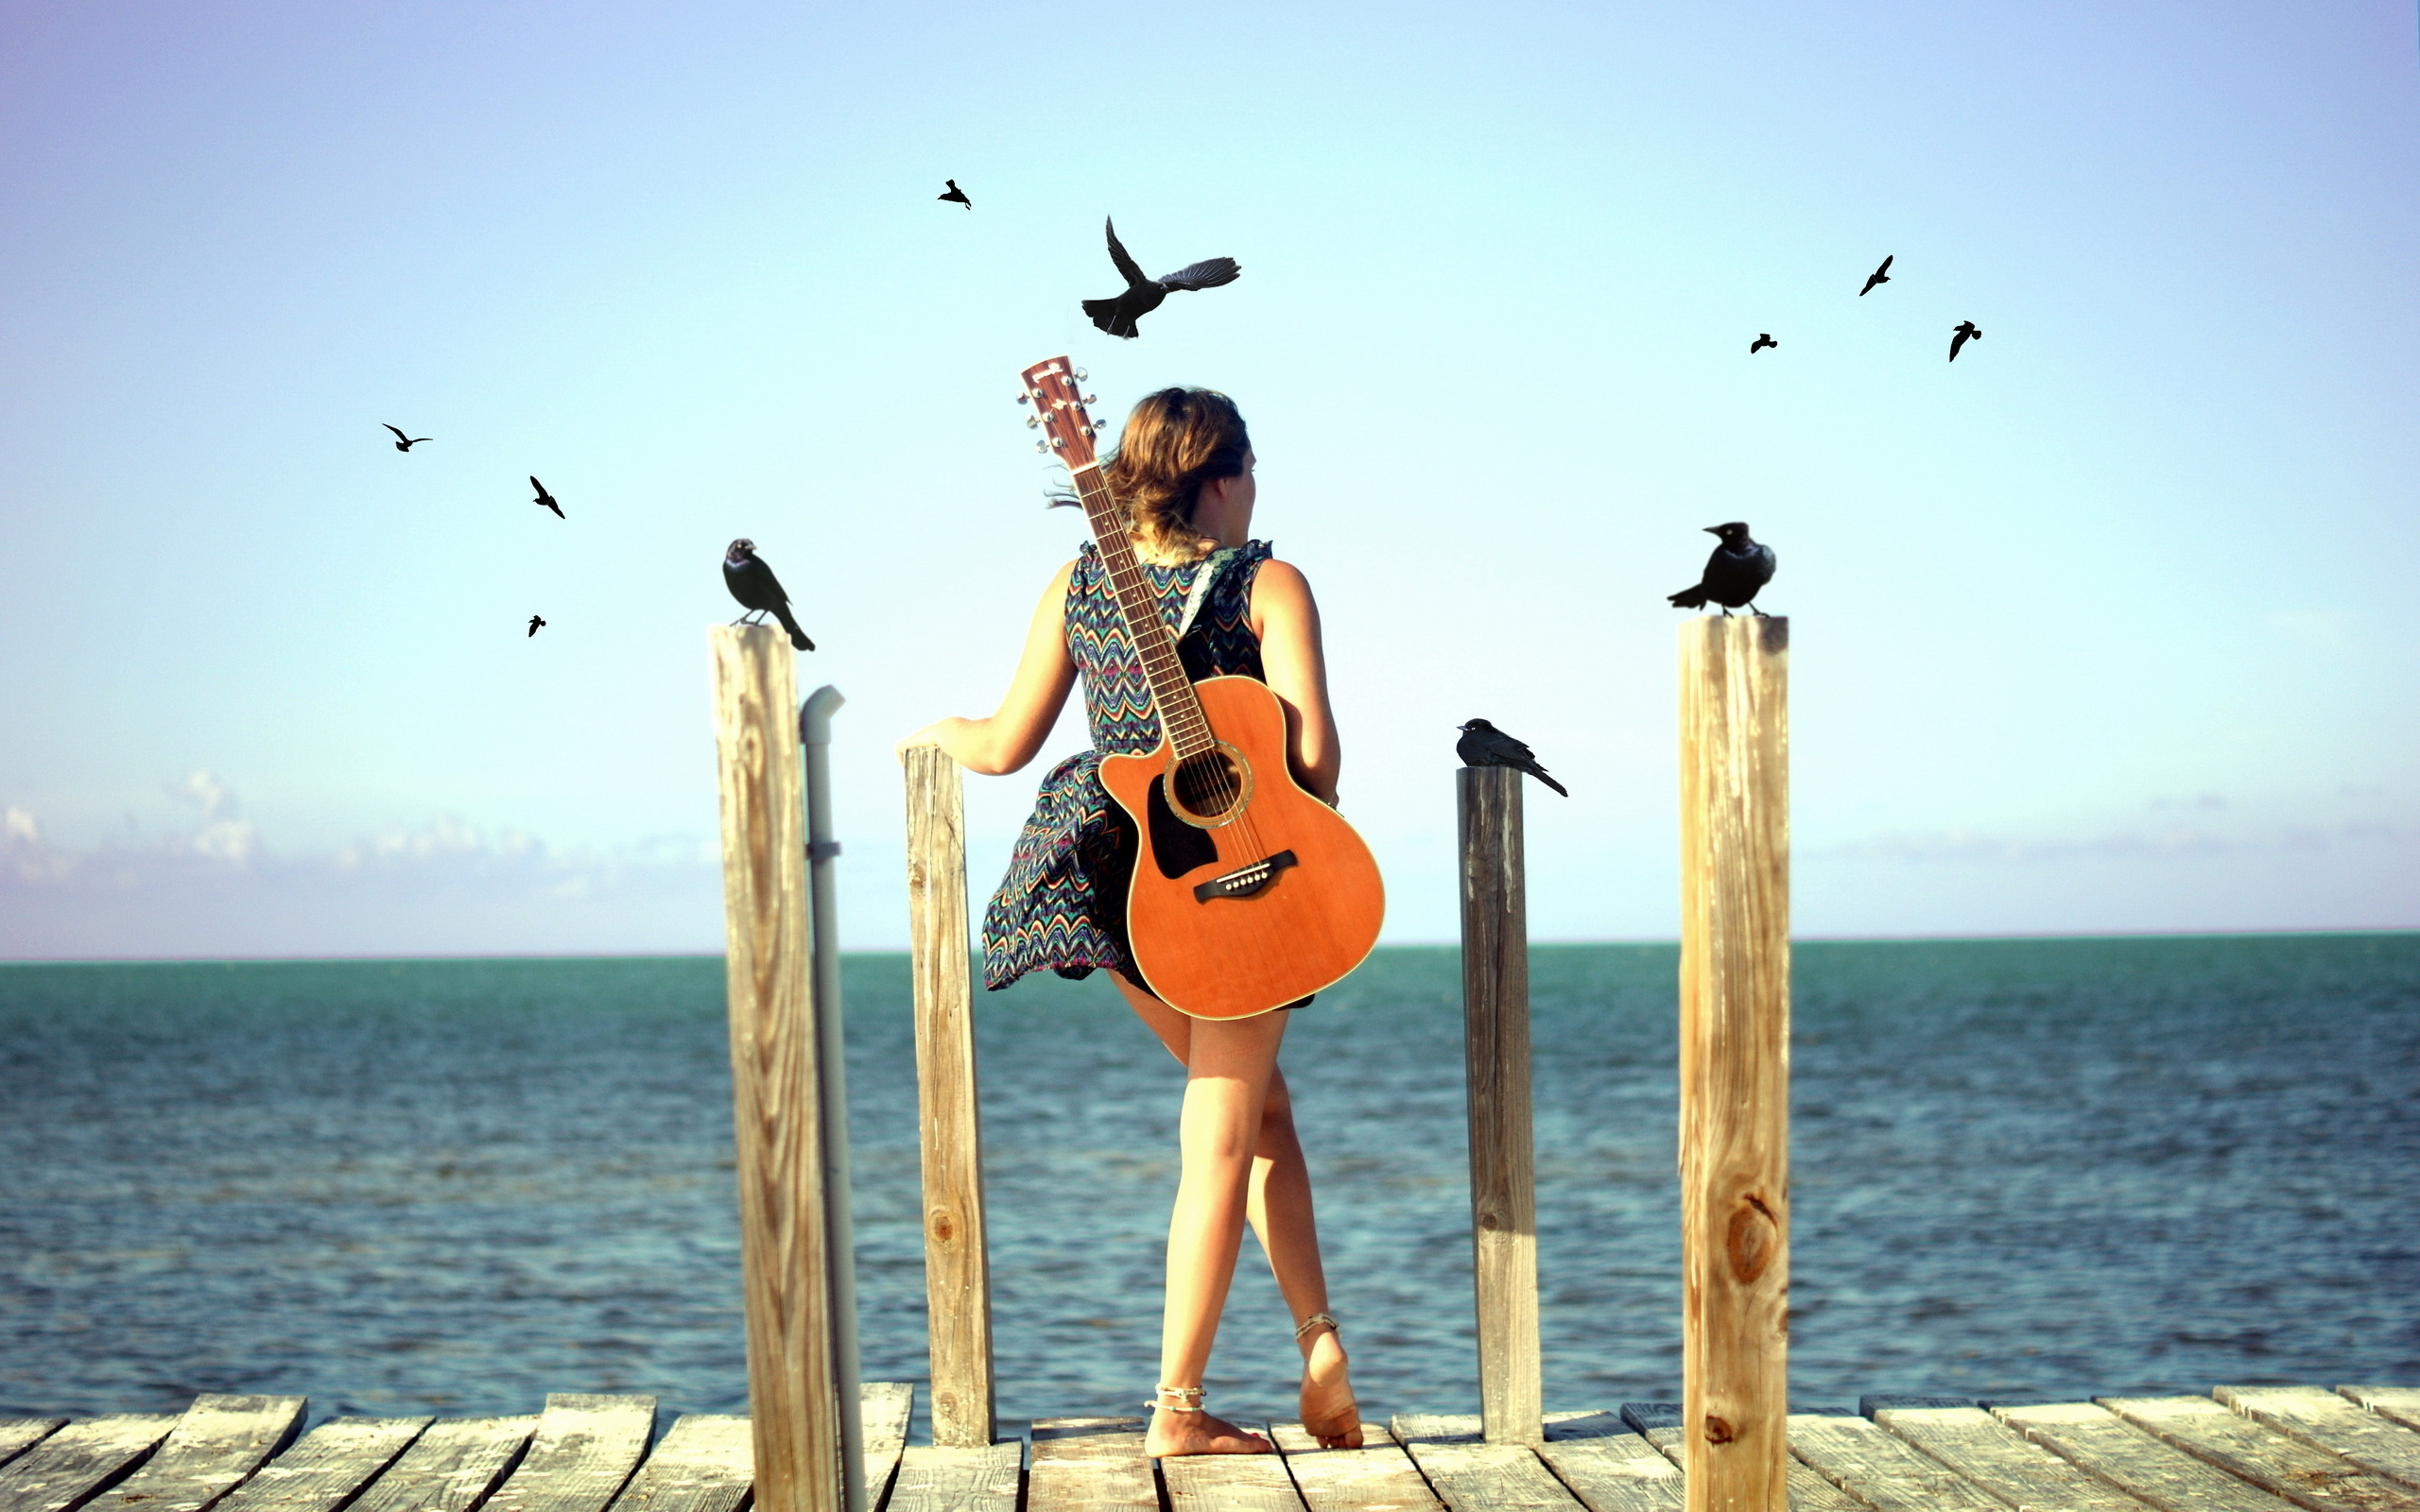 Guitar Girl Beach Wallpaper 2560x1600 28709